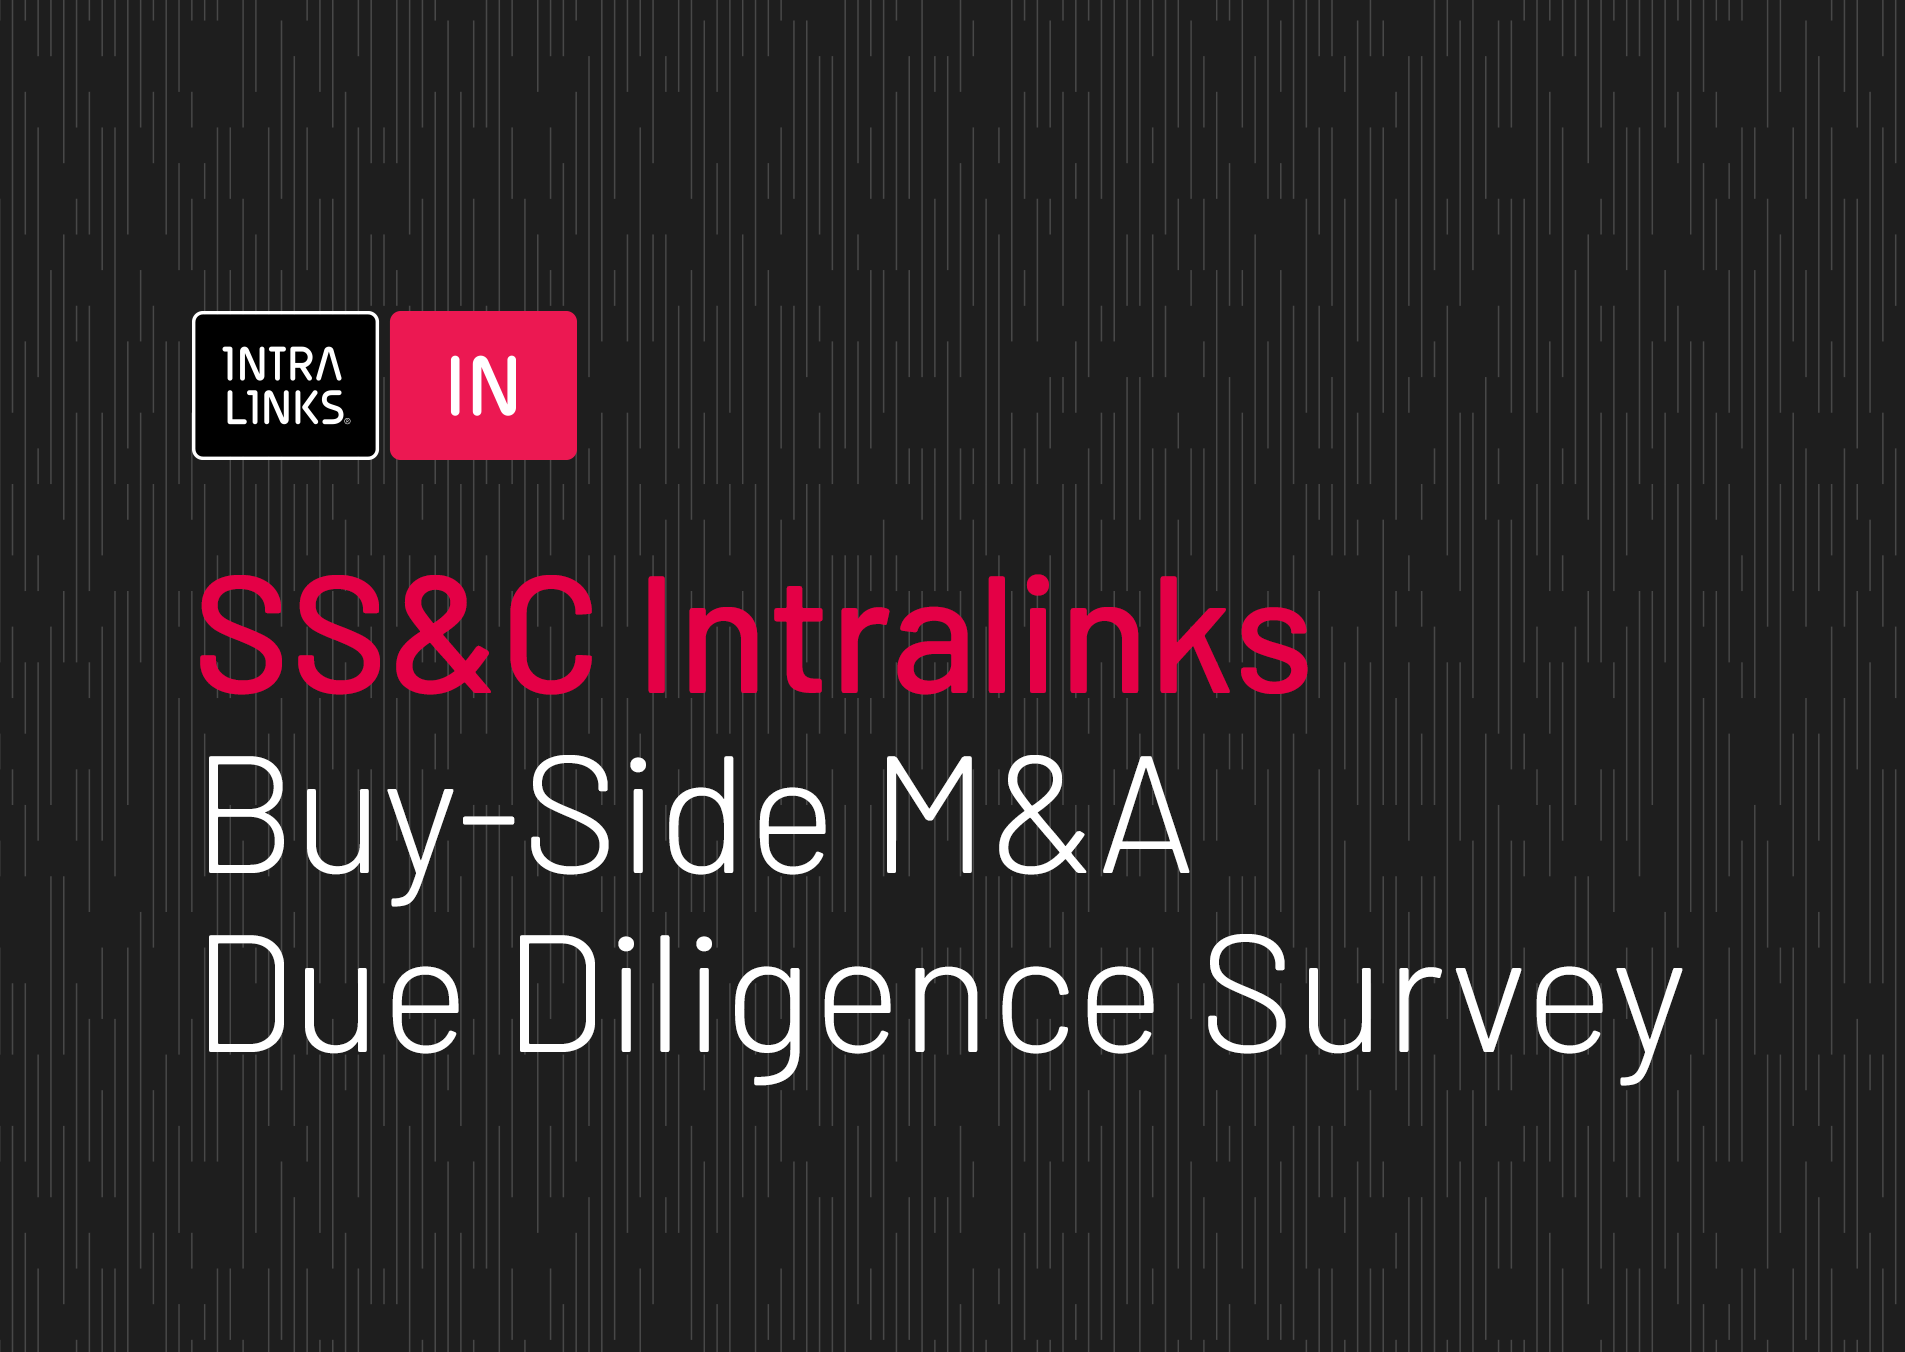 Intralinks Buy-Side M&A Due Diligence Survey